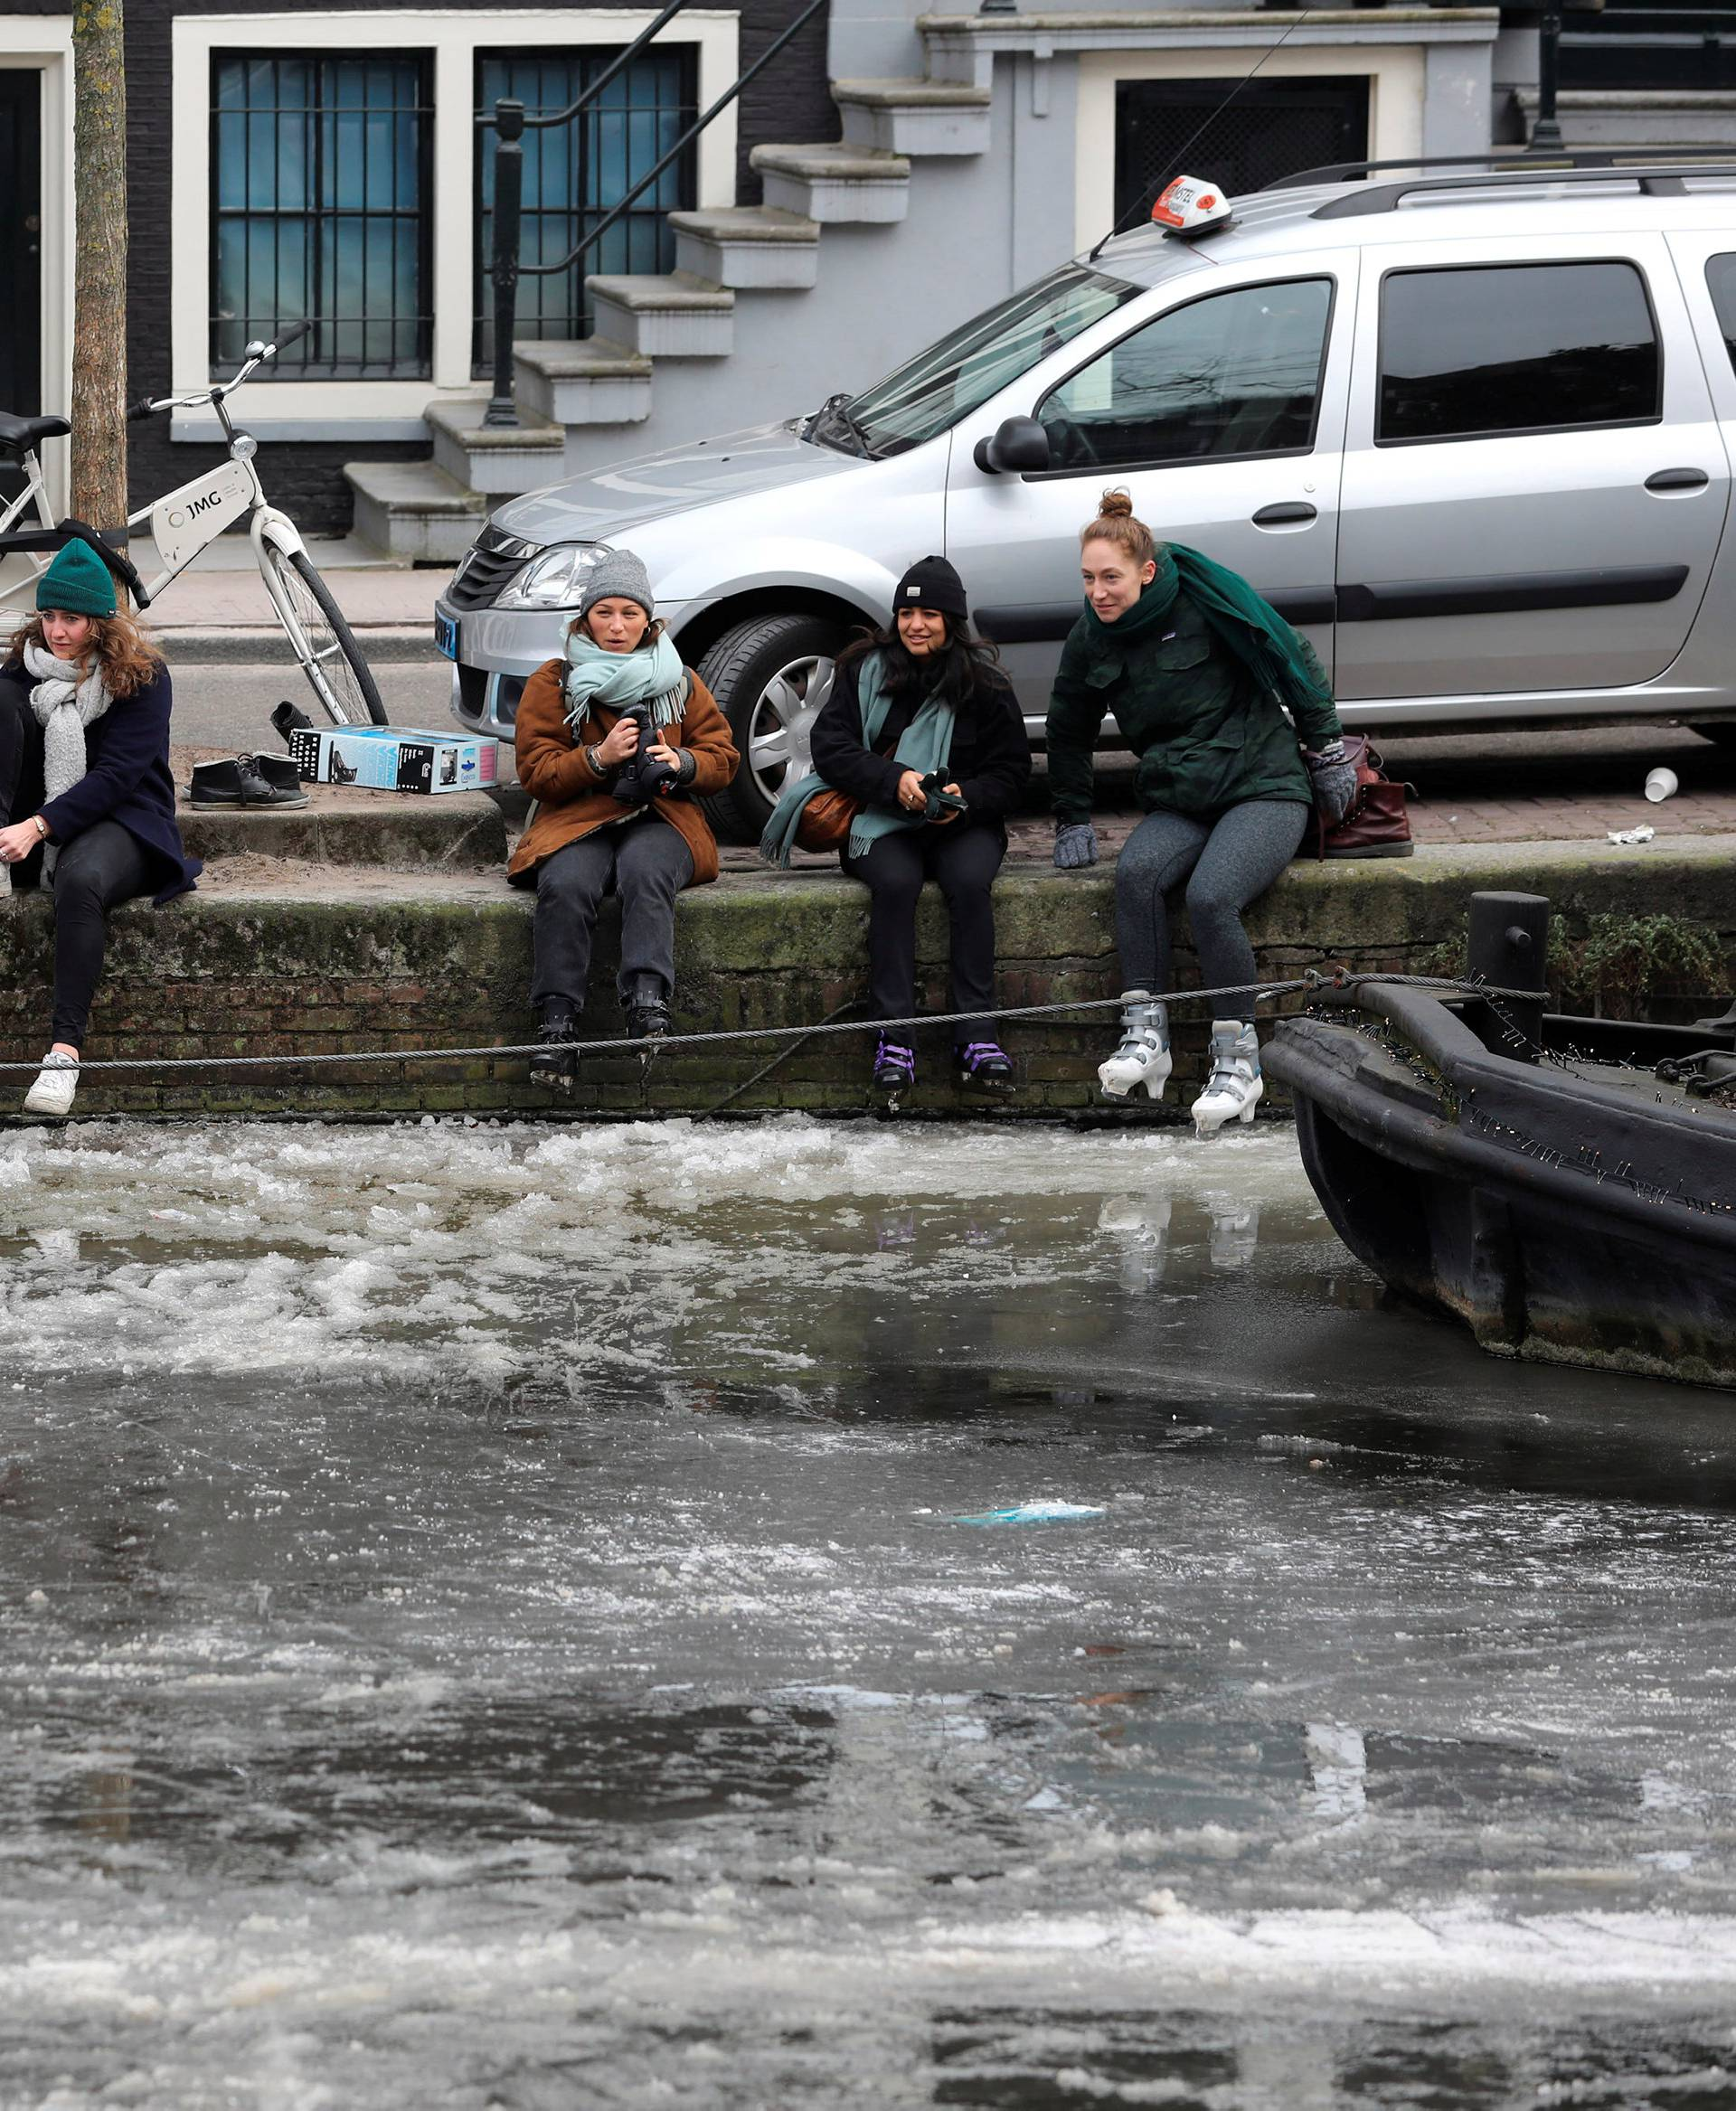 Ice skaters get ready to skate on frozen canal during icy weather in Amsterdam